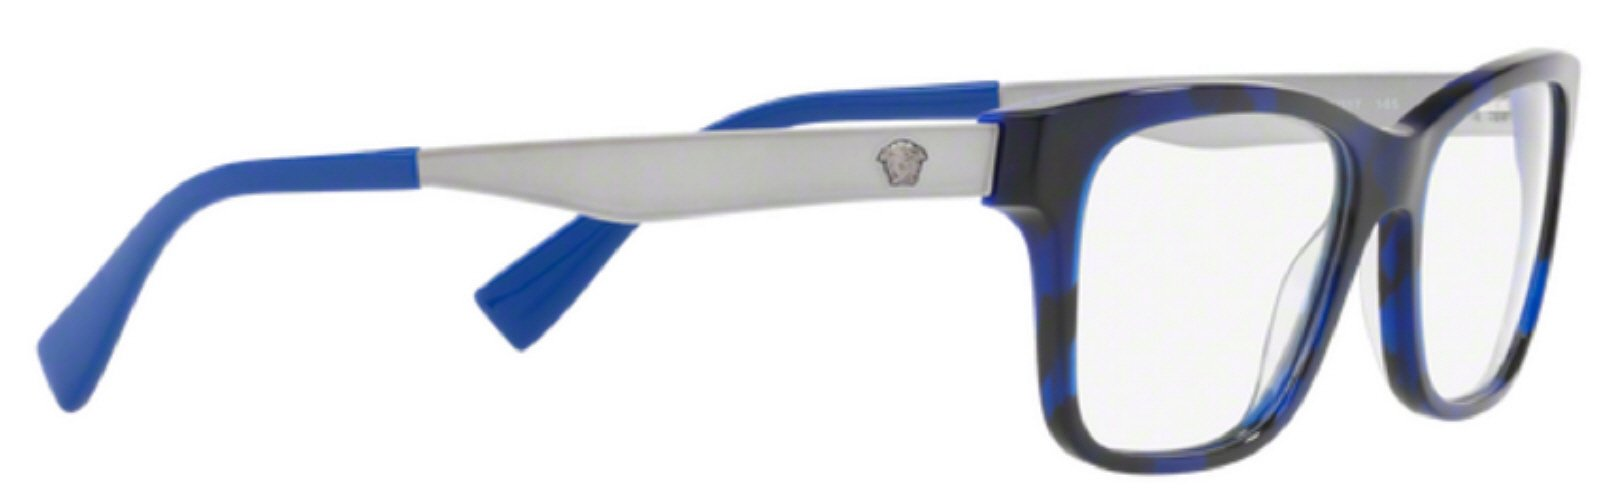 34c1379545 3pm view of Versace Eyeglasses - FUN ABOUT TOWN VE3245 5237 53 TORTOISE  HAVANA ELECTRIC BLUE